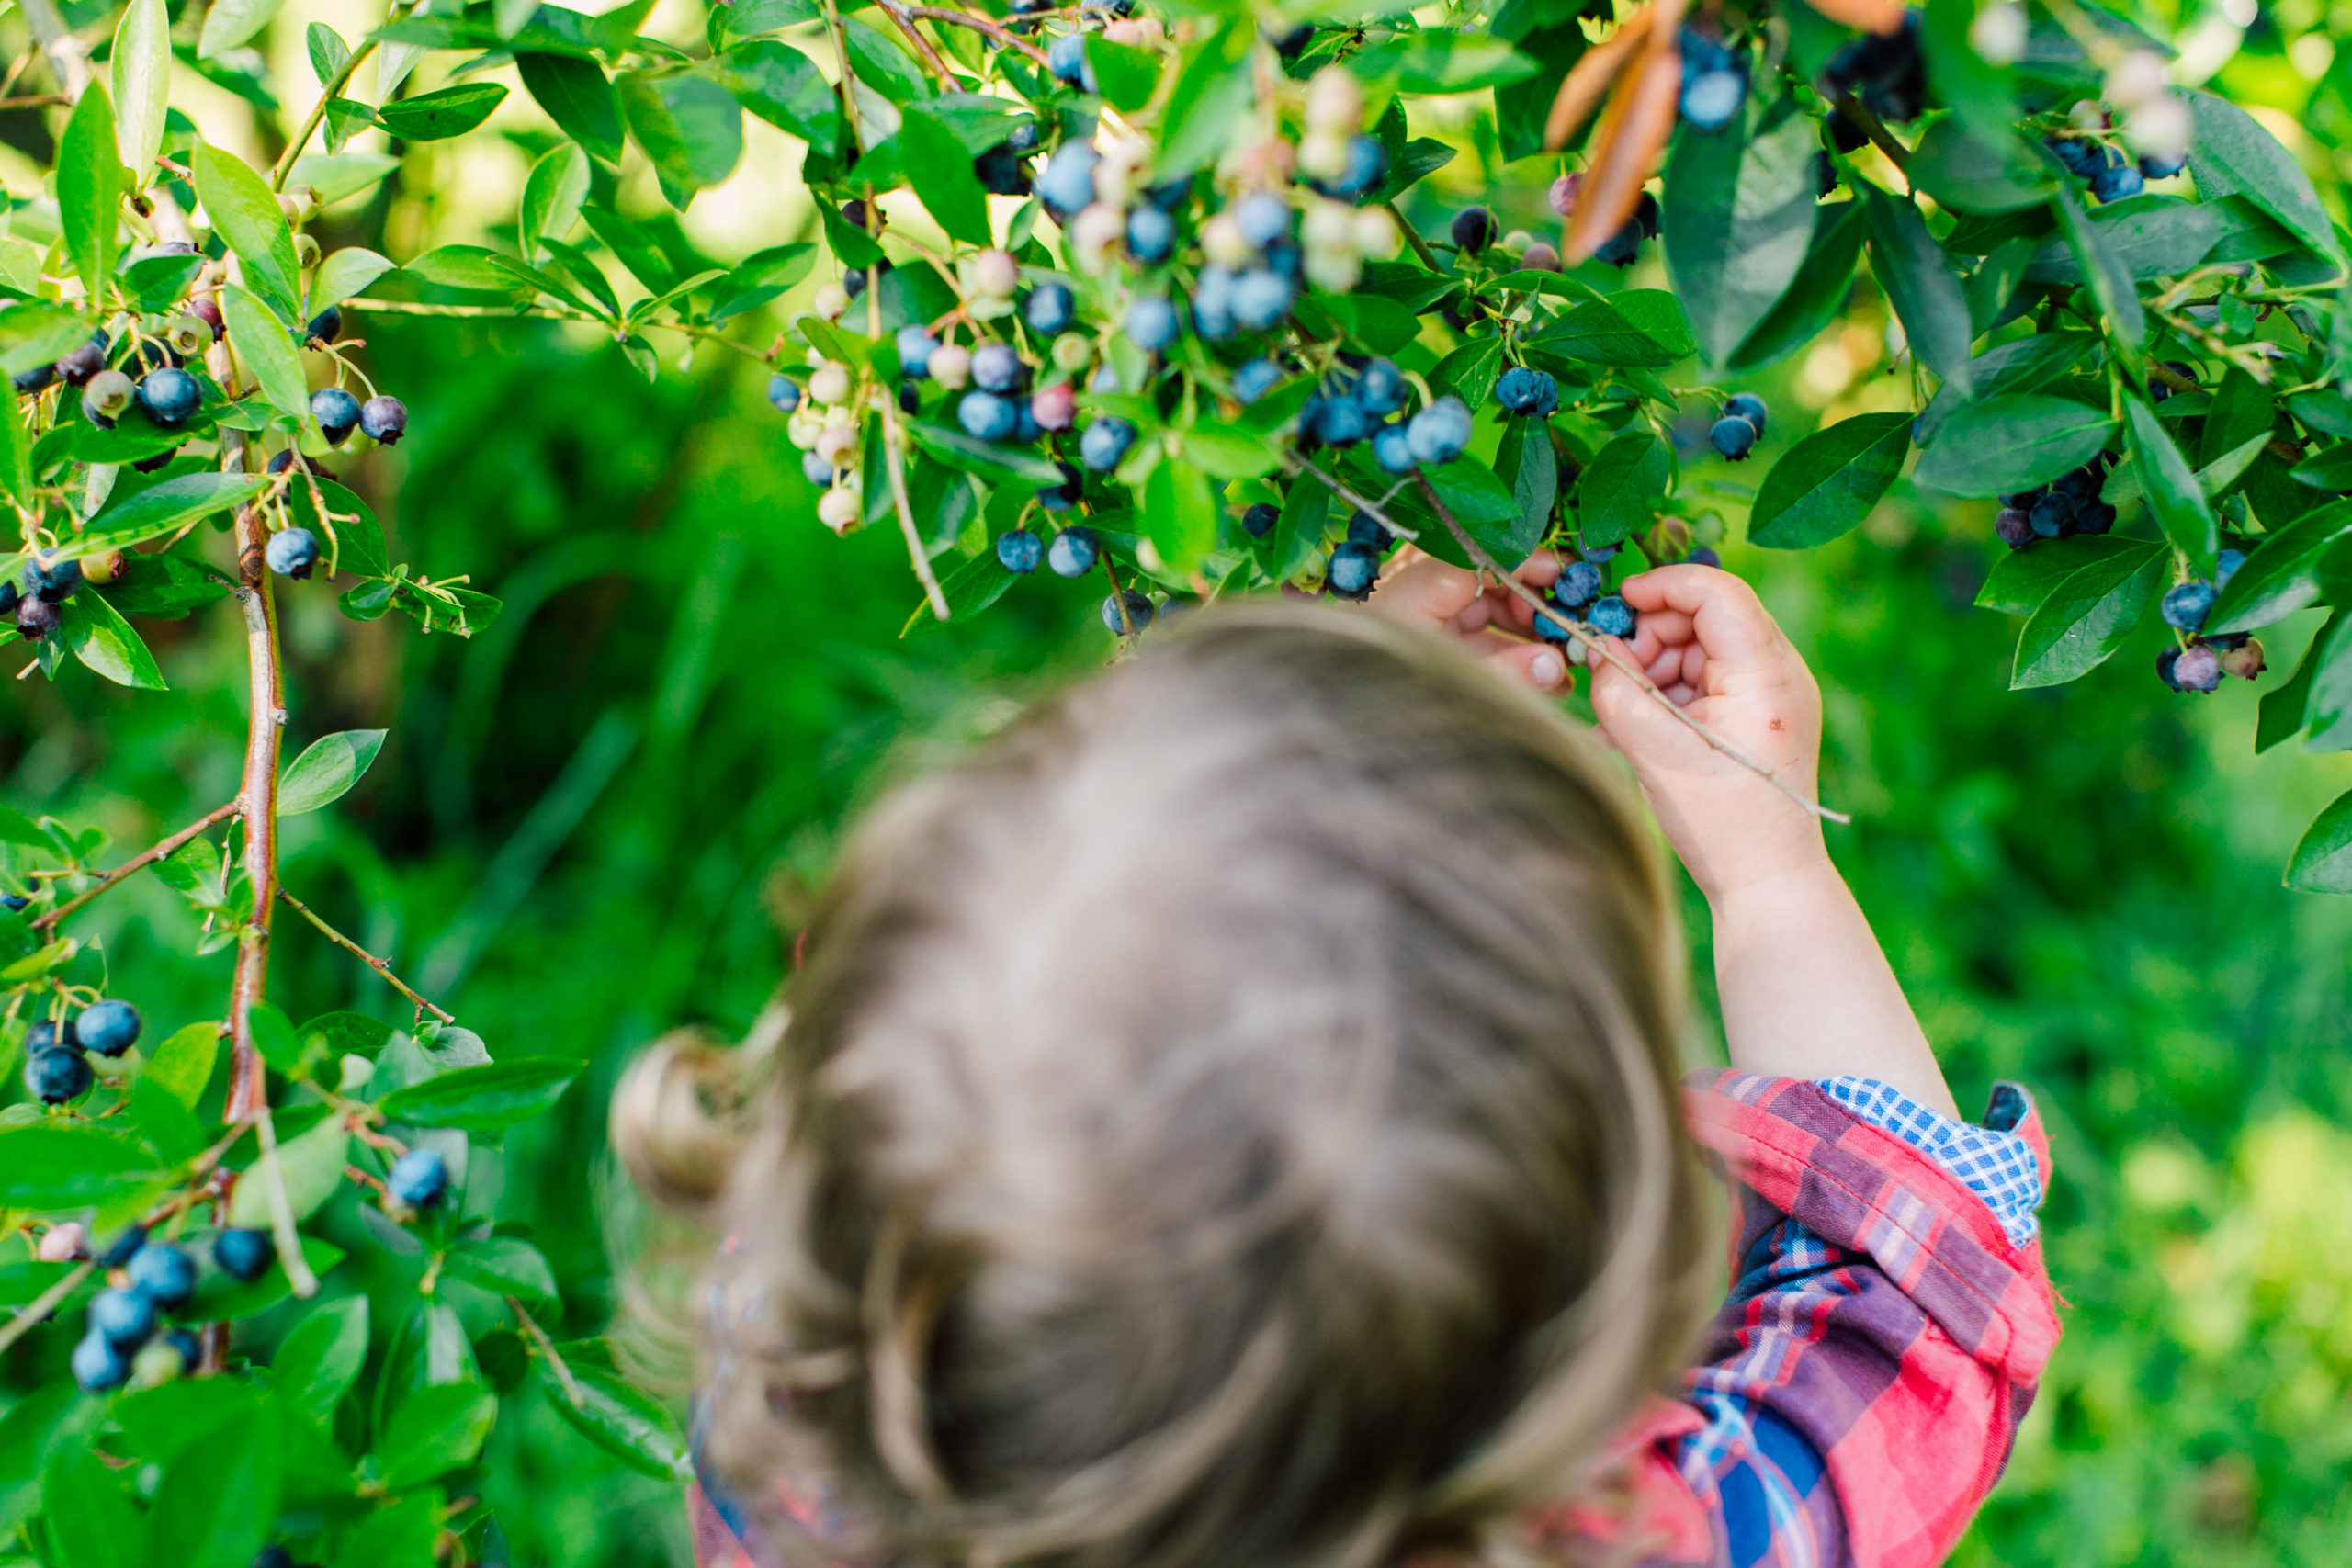 Child picking ripe blueberries at Goat Boat Farm in Everson, WA